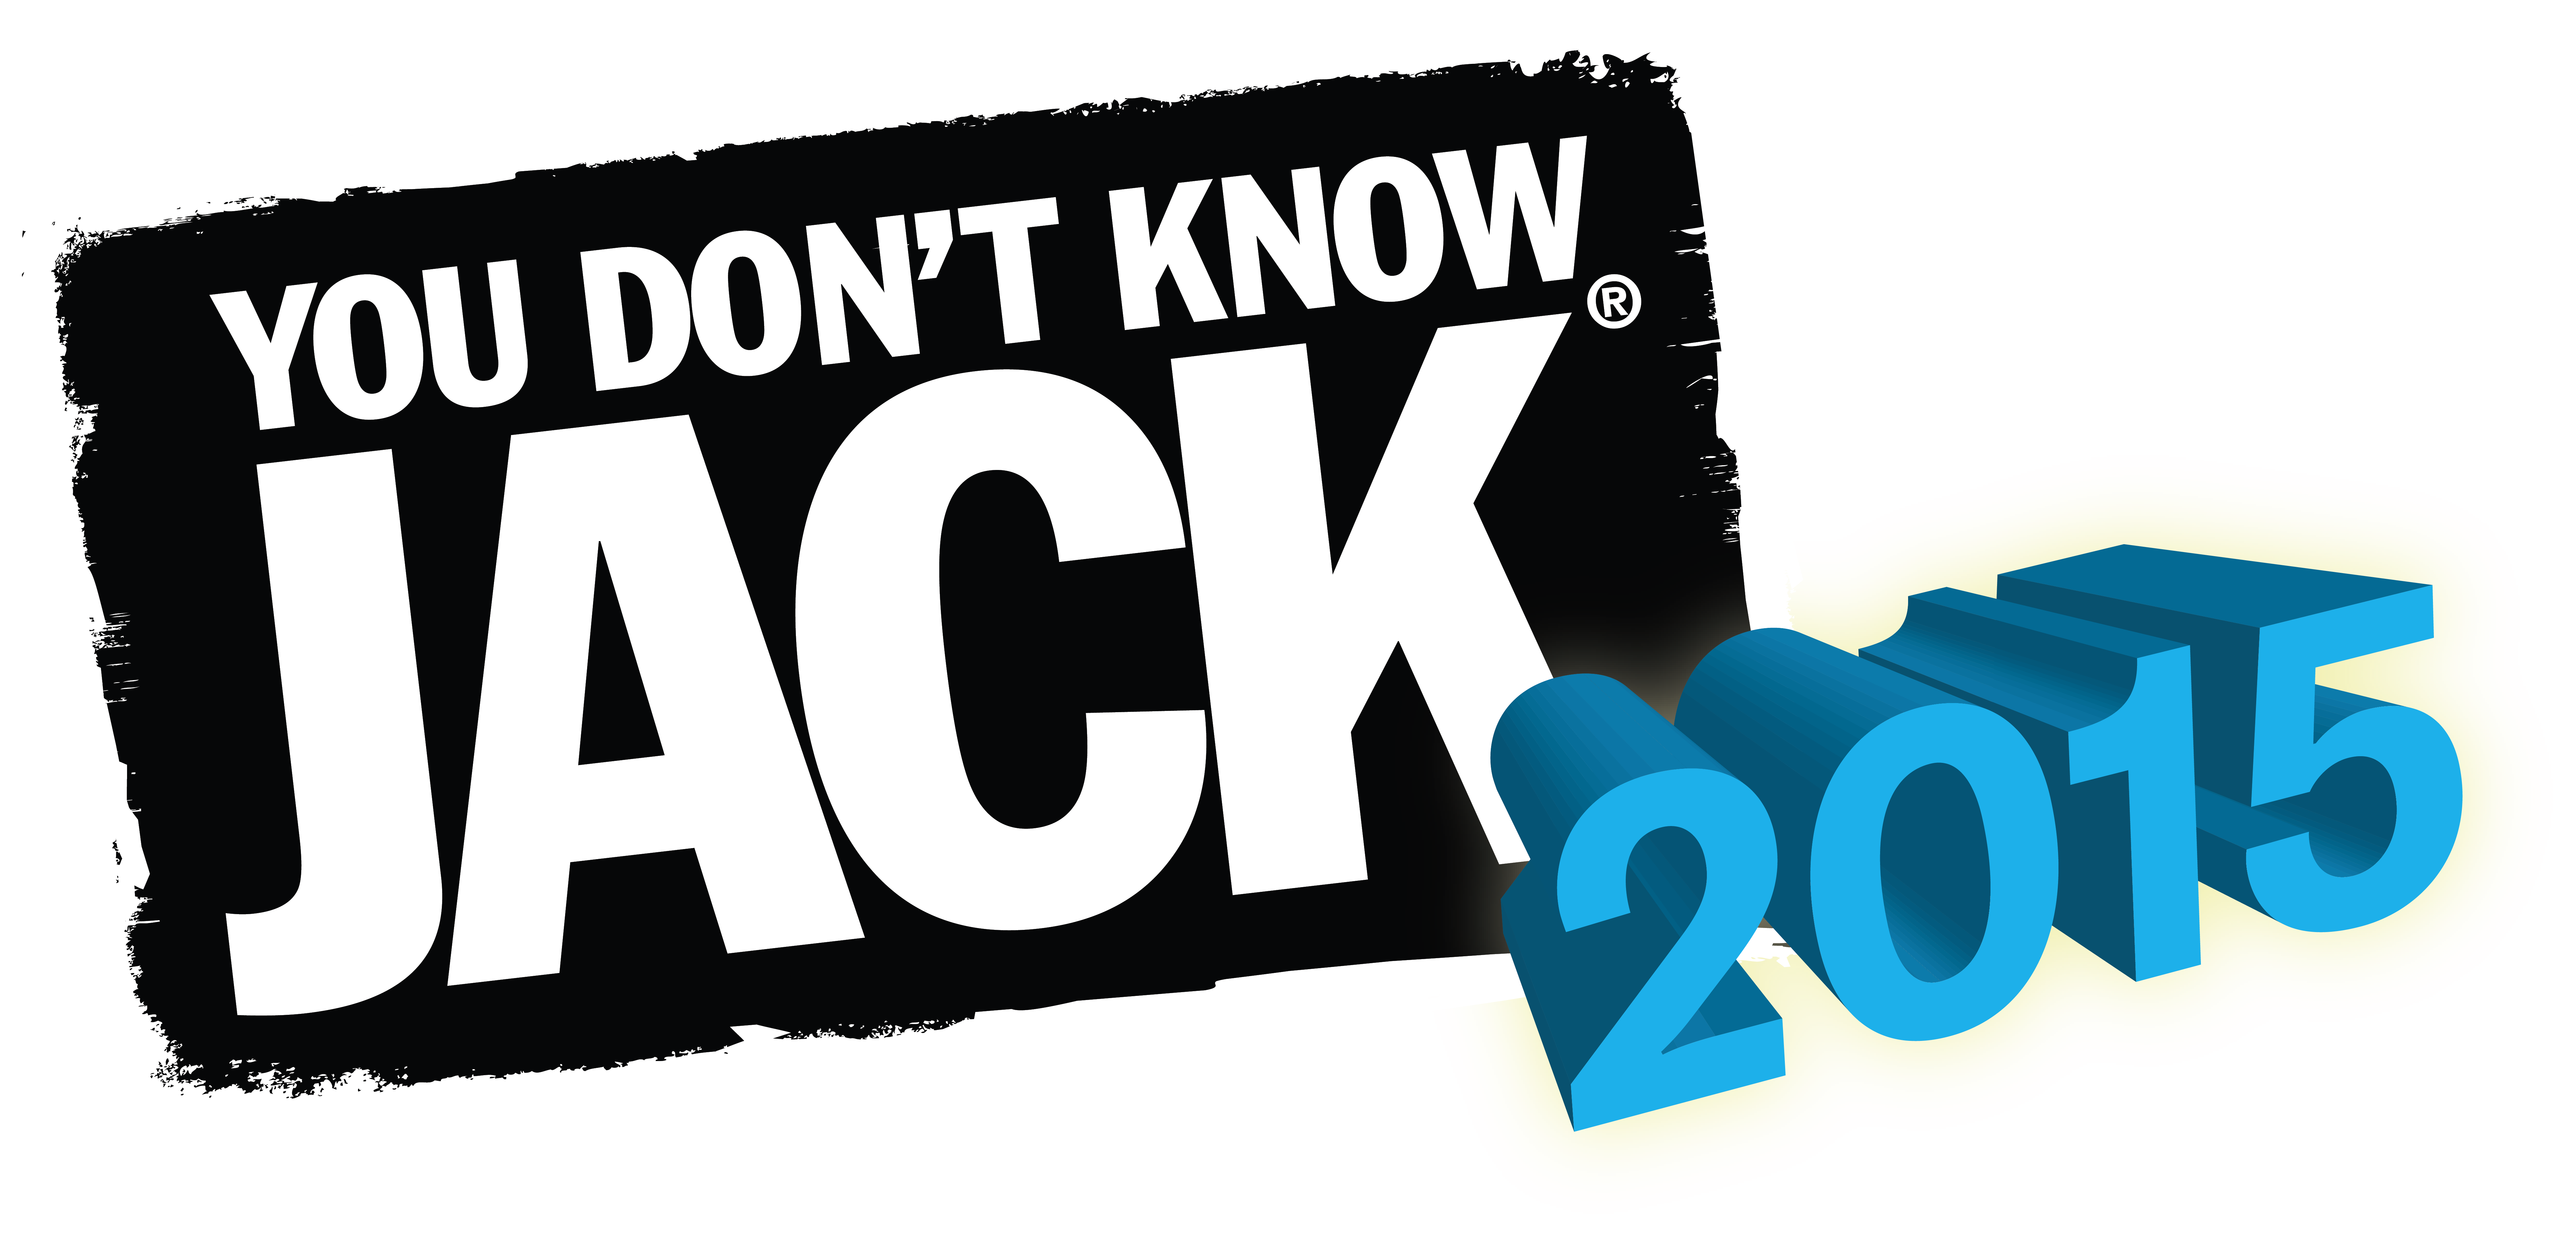 You don't know Jack 2015